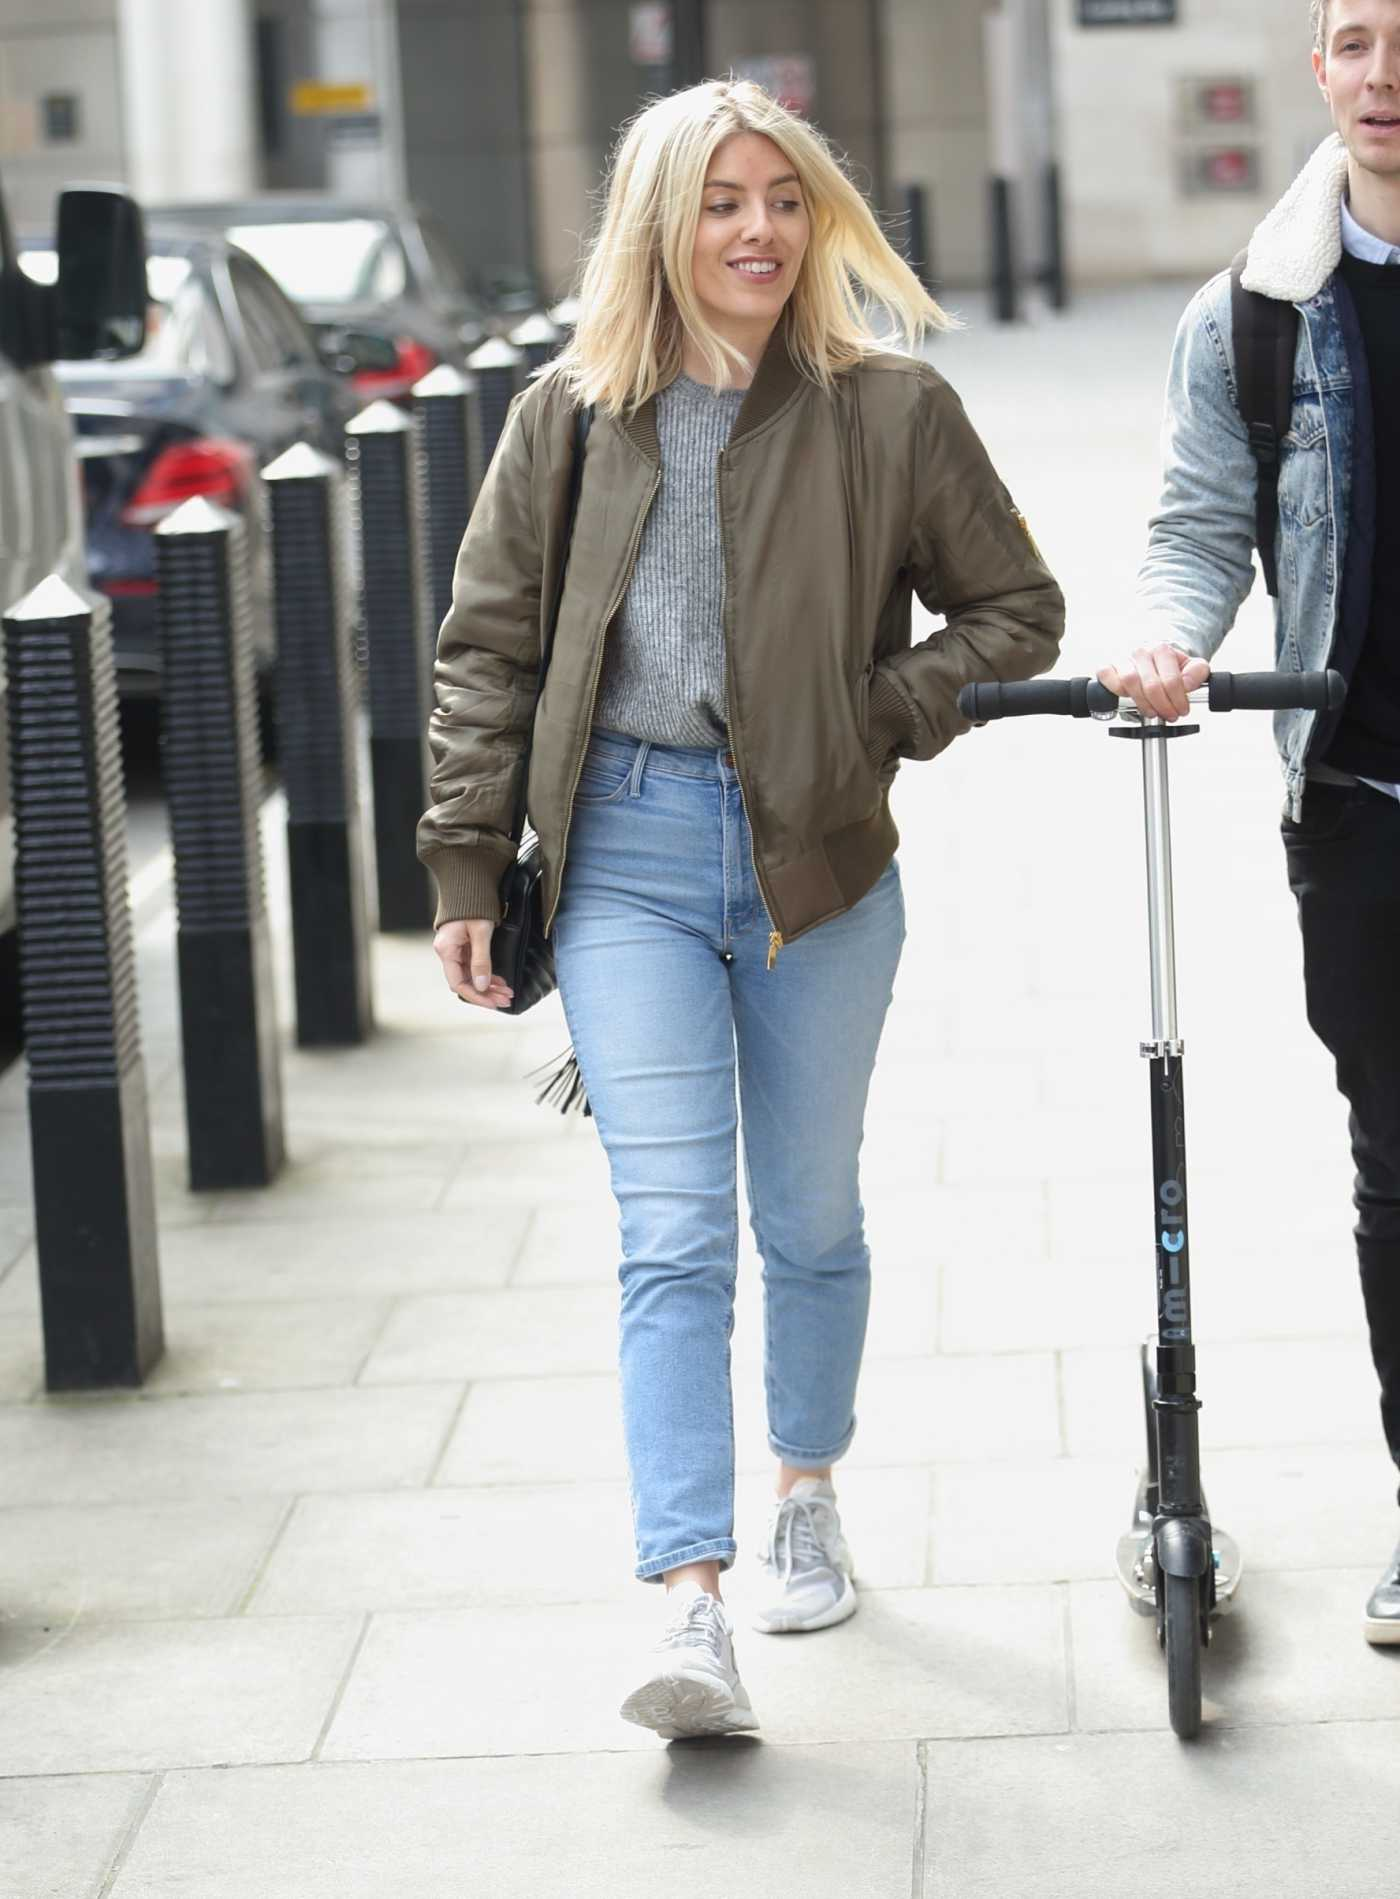 Mollie King in an Olive Bomber Jacket Arrives at BBC Studio in London 04/13/2019